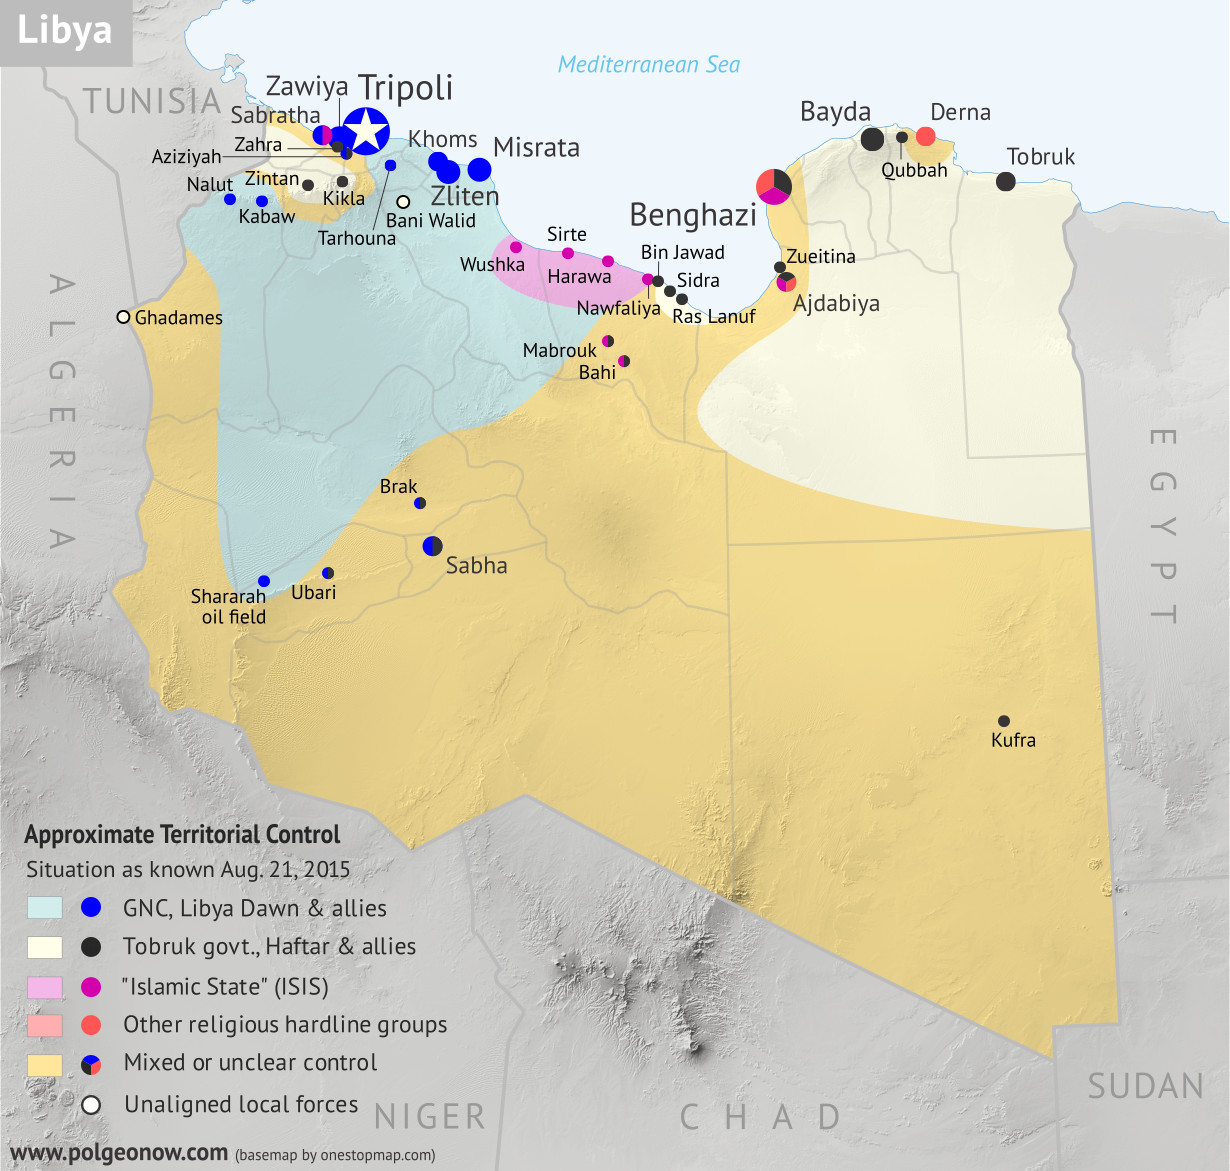 Libya control relief map: Shows detailed territorial control in Libya's civil war as of August 2015, including all major parties (Tobruk government, General Haftar's Operation Dignity forces, and Zintan militias; Tripoli GNC government, Libya Dawn, and Libya Shield Force; Shura Council of Benghazi Revolutionaries and other hardline Islamist groups; and the so-called Islamic State). Also file under: Map of Islamic State (ISIS) control in Libya.